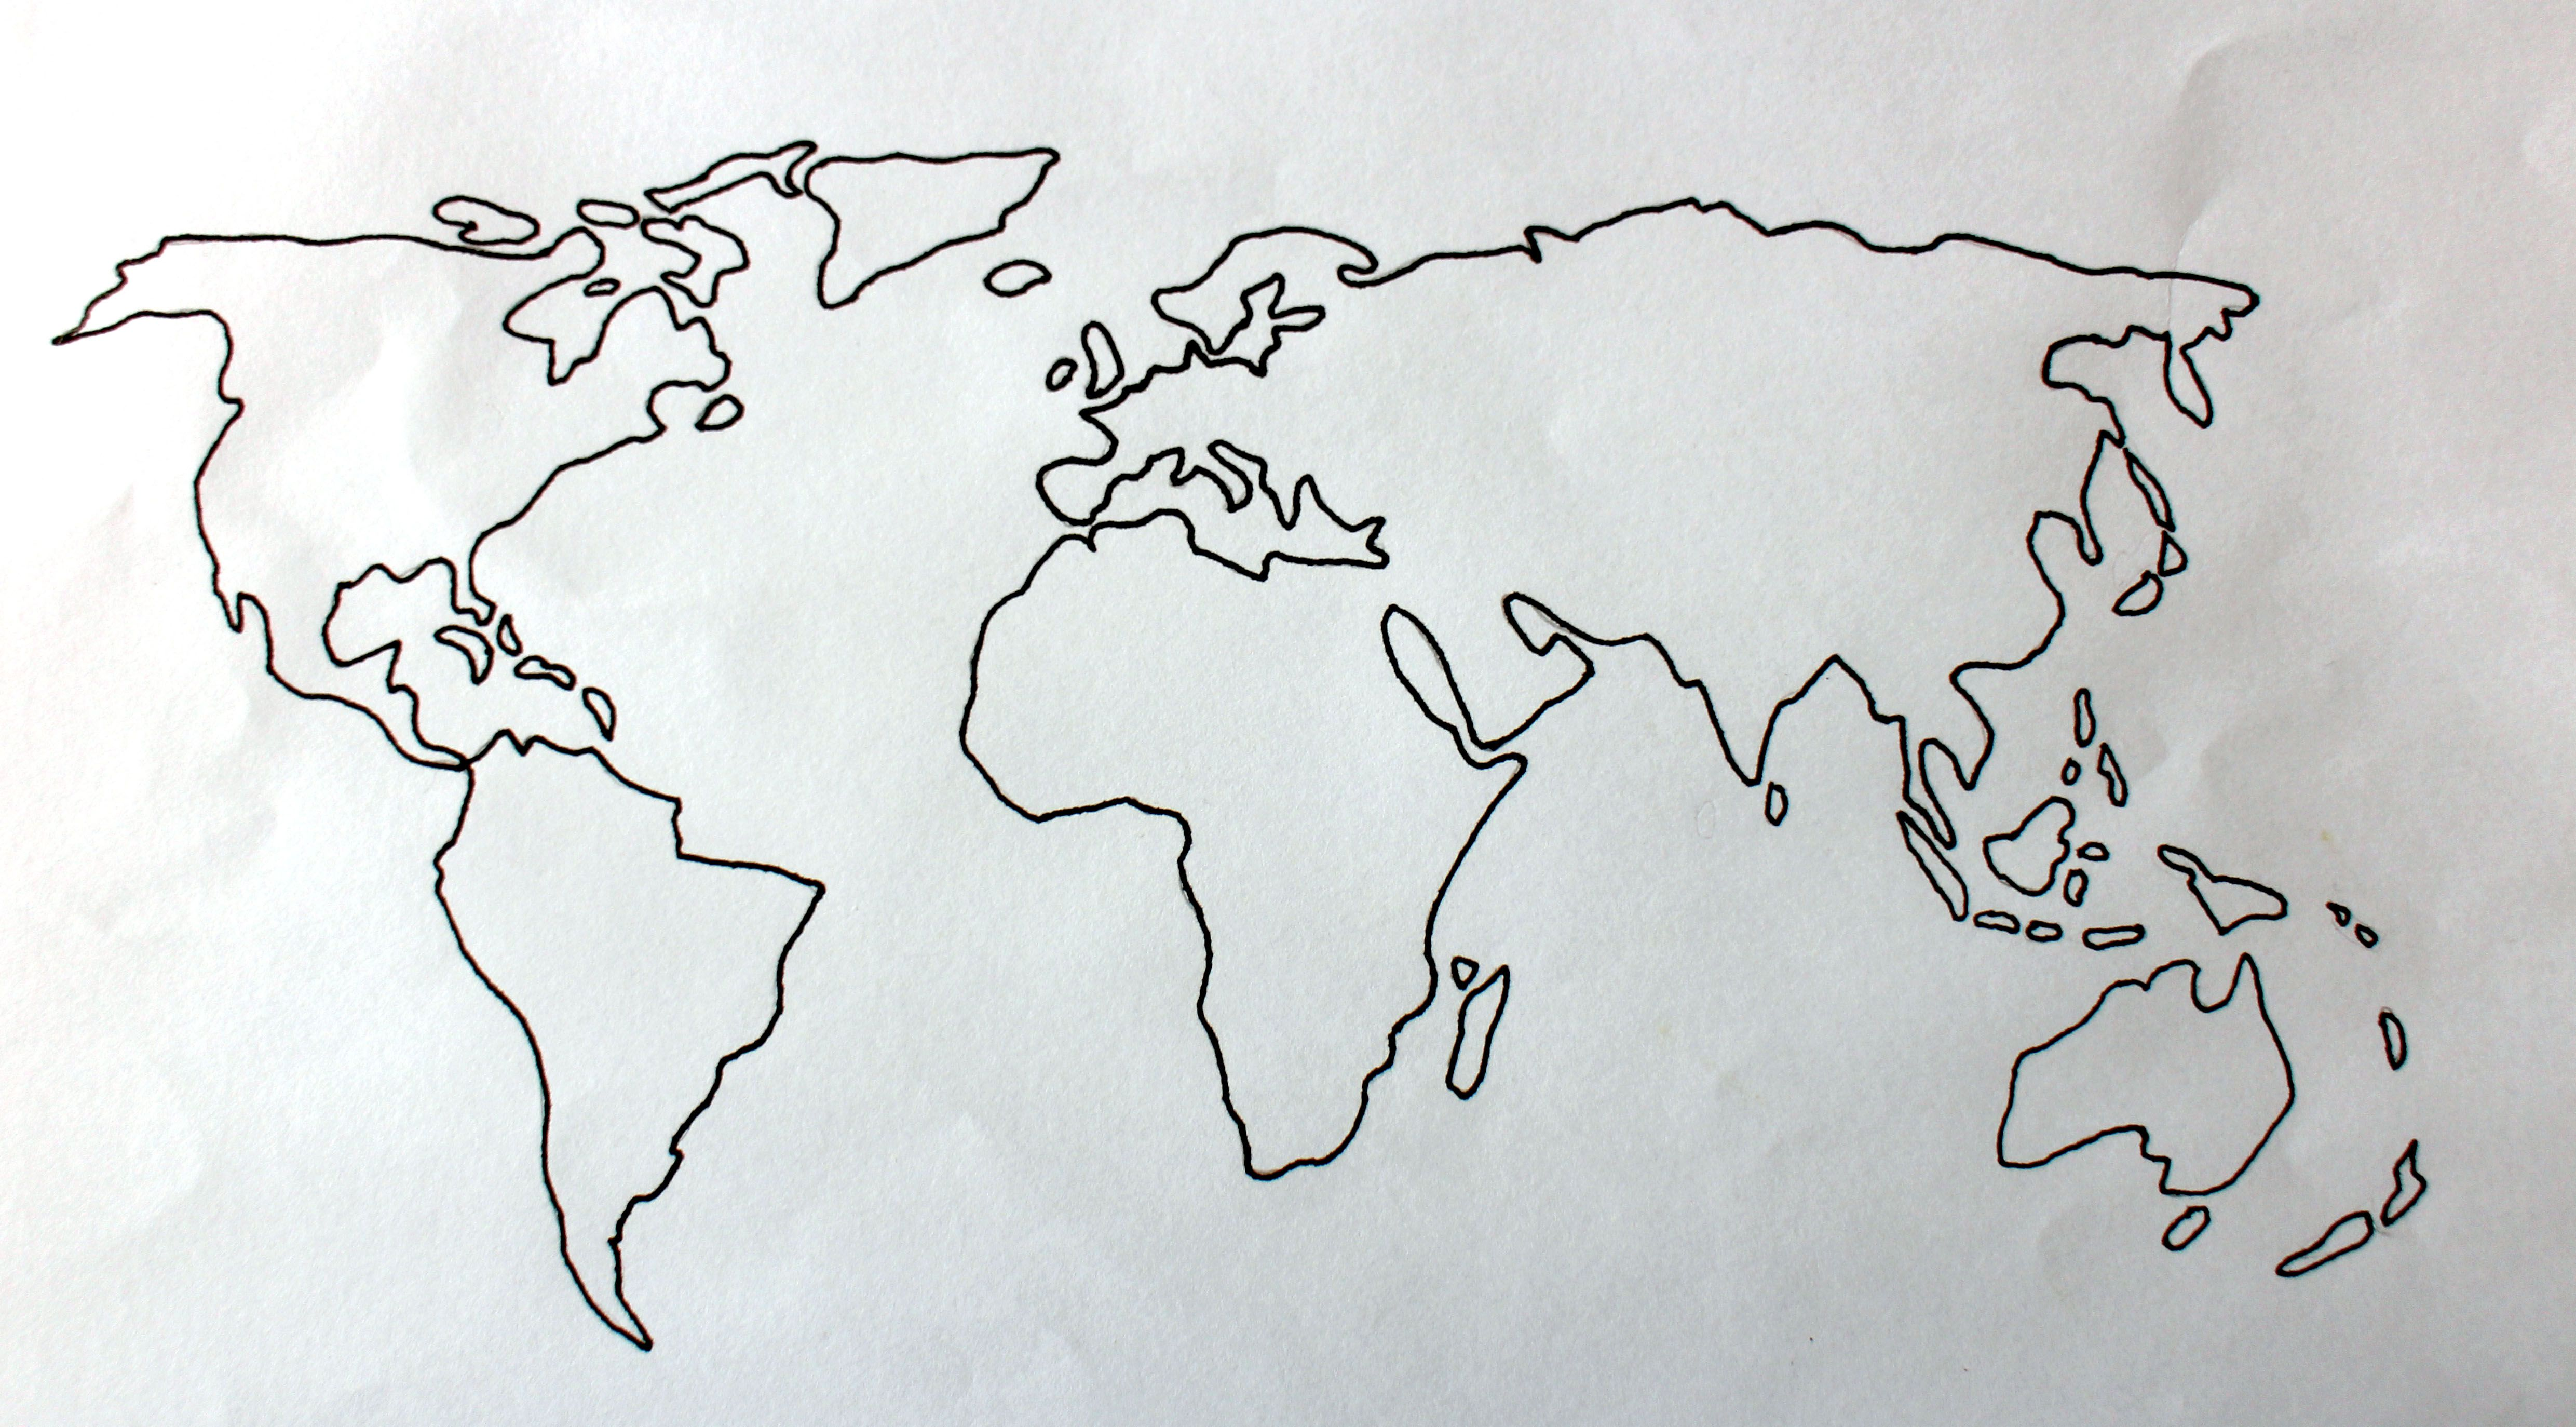 World map globe drawing bleublondetumblr art pinterest world map globe drawing bleublondetumblr gumiabroncs Image collections